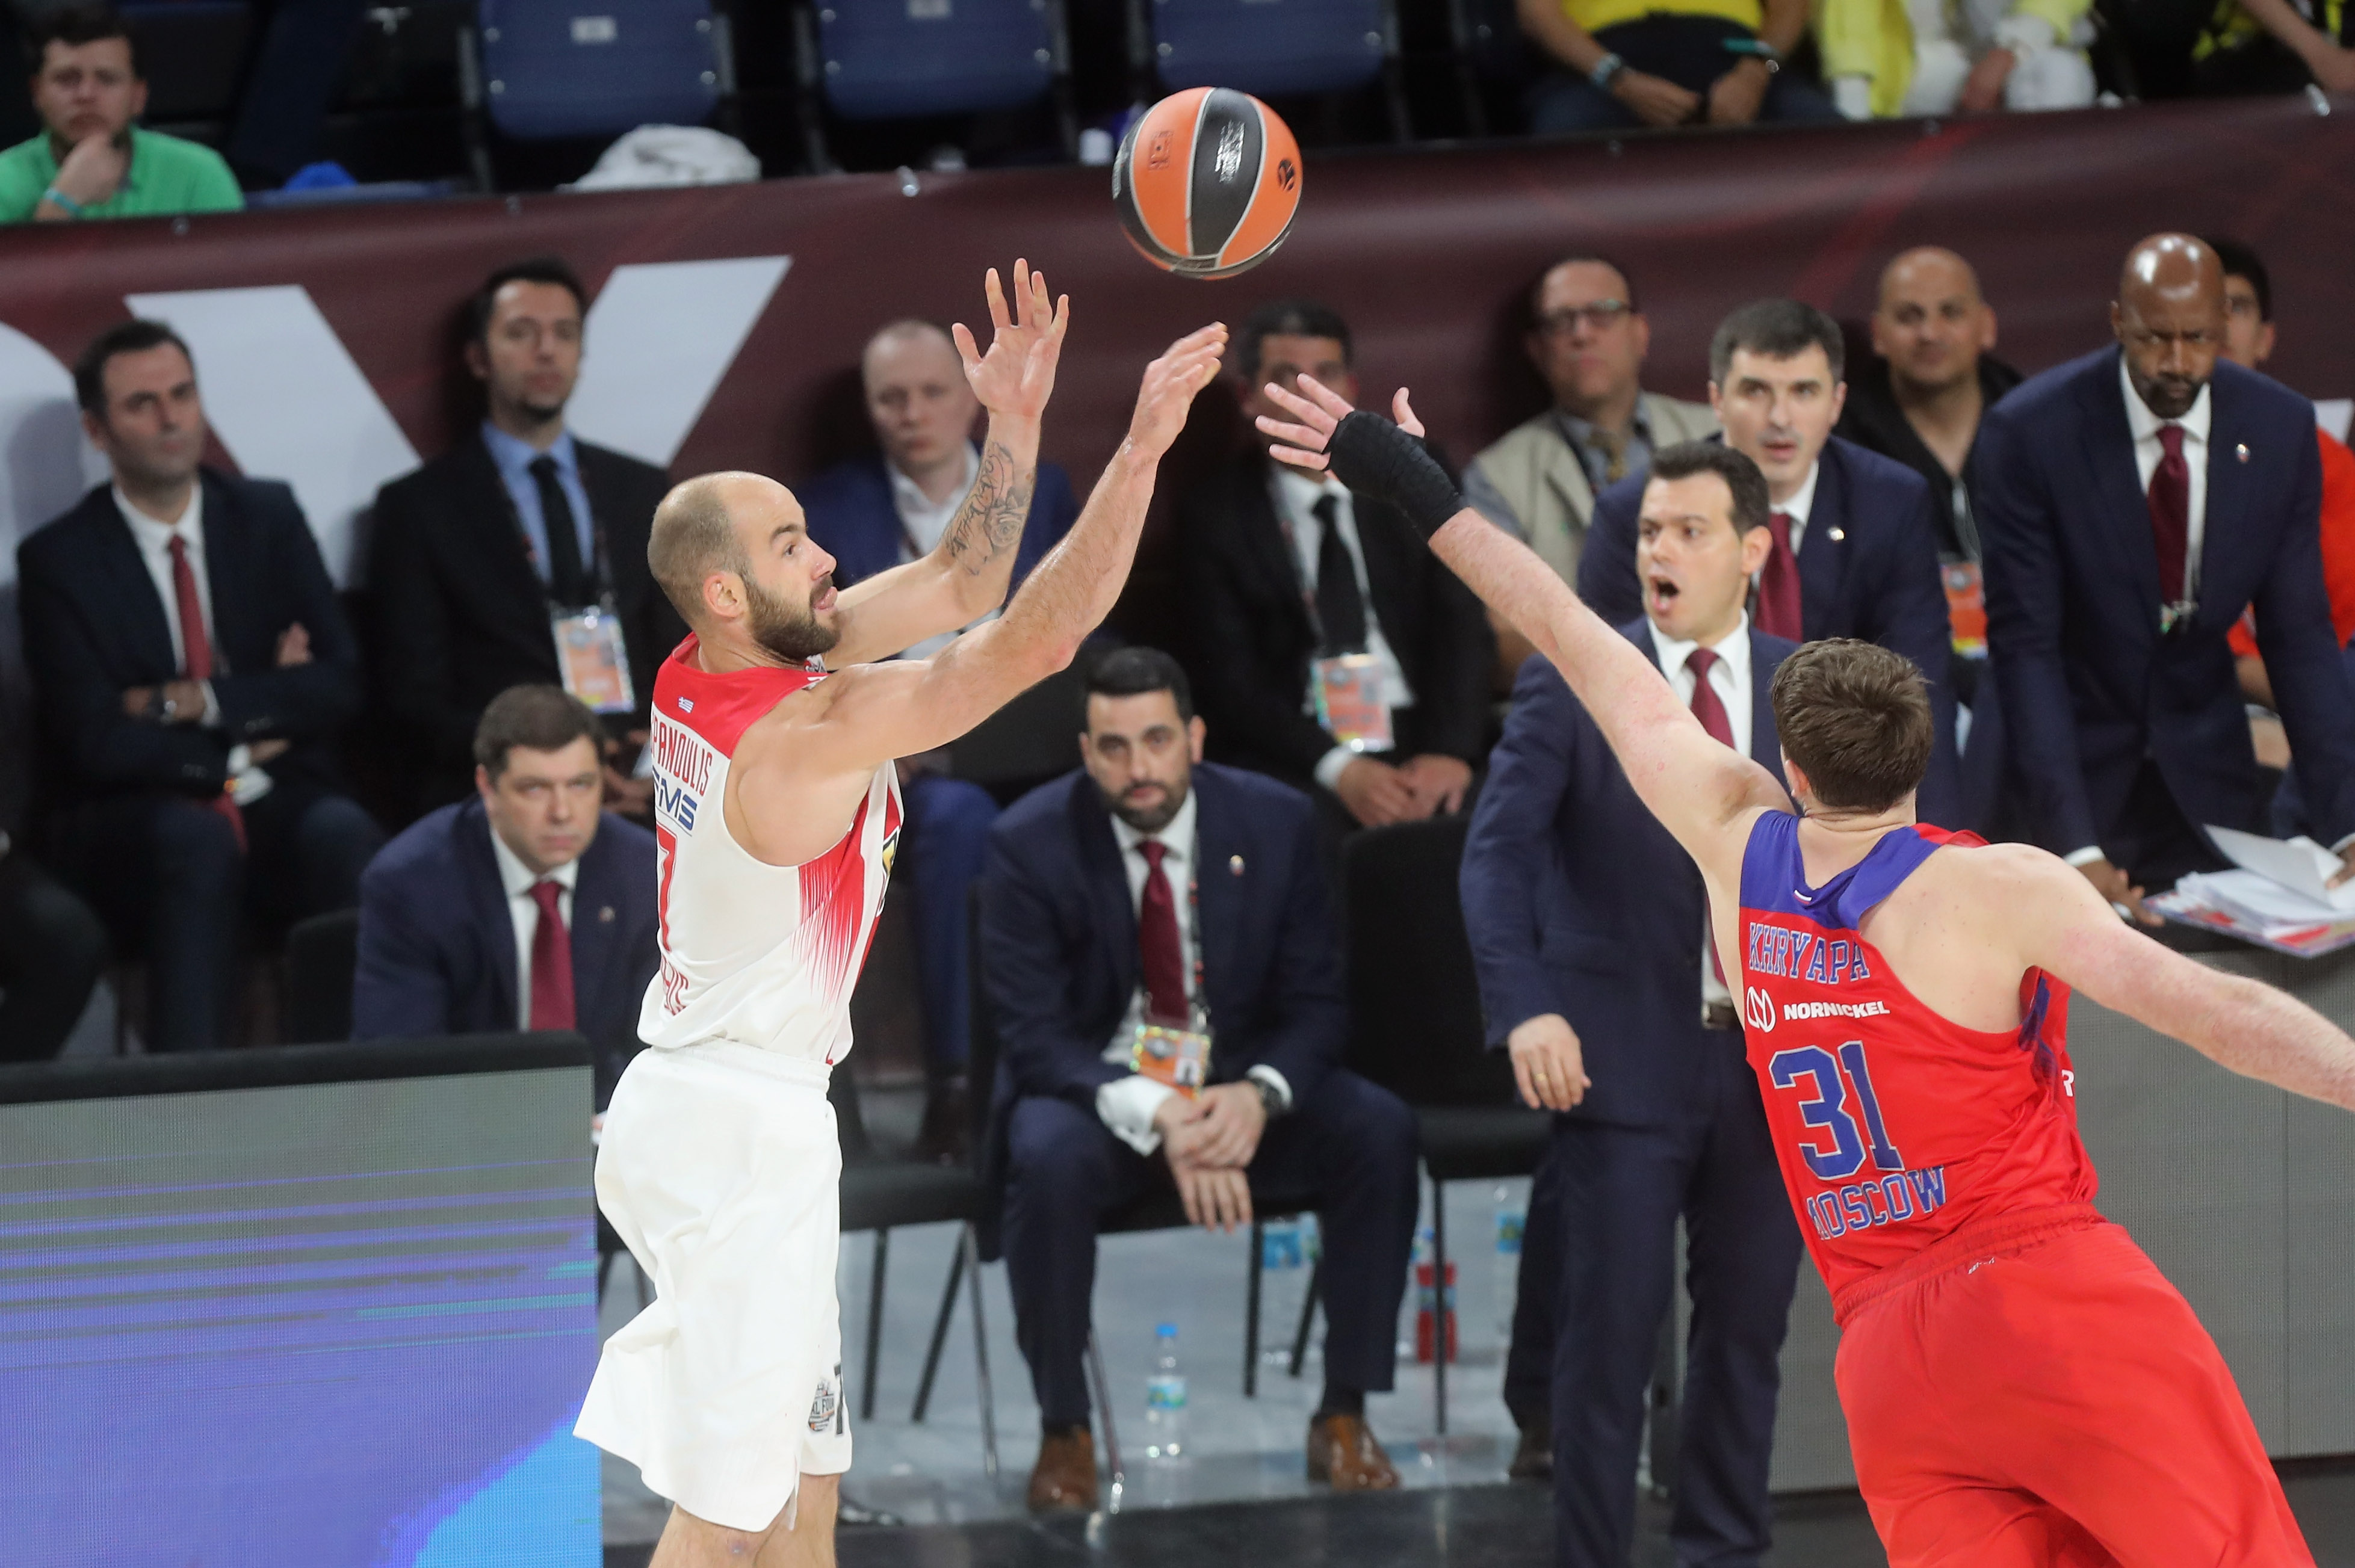 685343850-cska-moscow-v-olympiacos-piraeus-turkish-airlines-euroleague-final-four-istanbul-semifinal-b.jpg